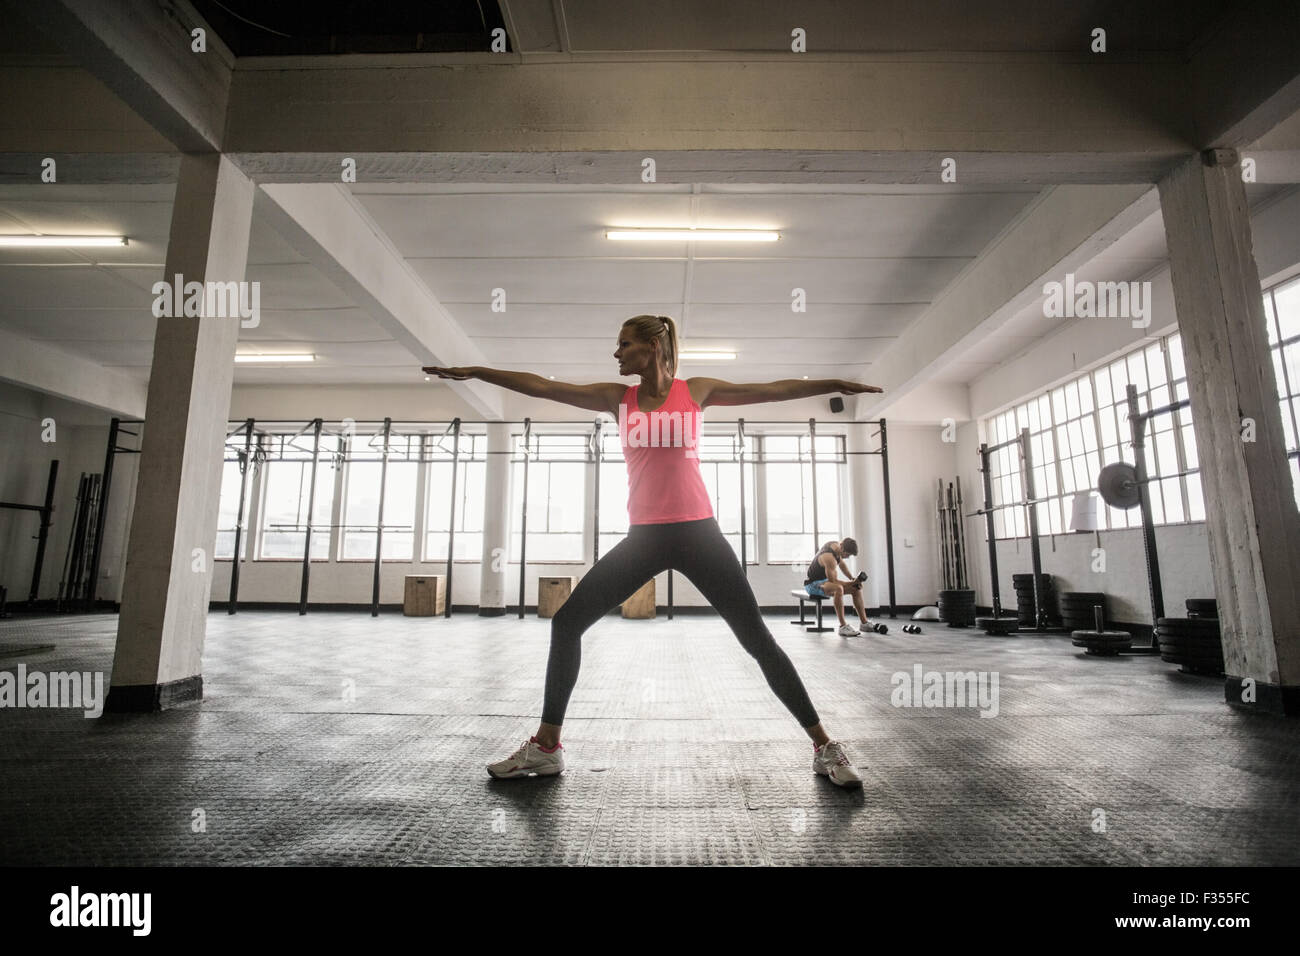 Fit woman doing stretching exercice Photo Stock